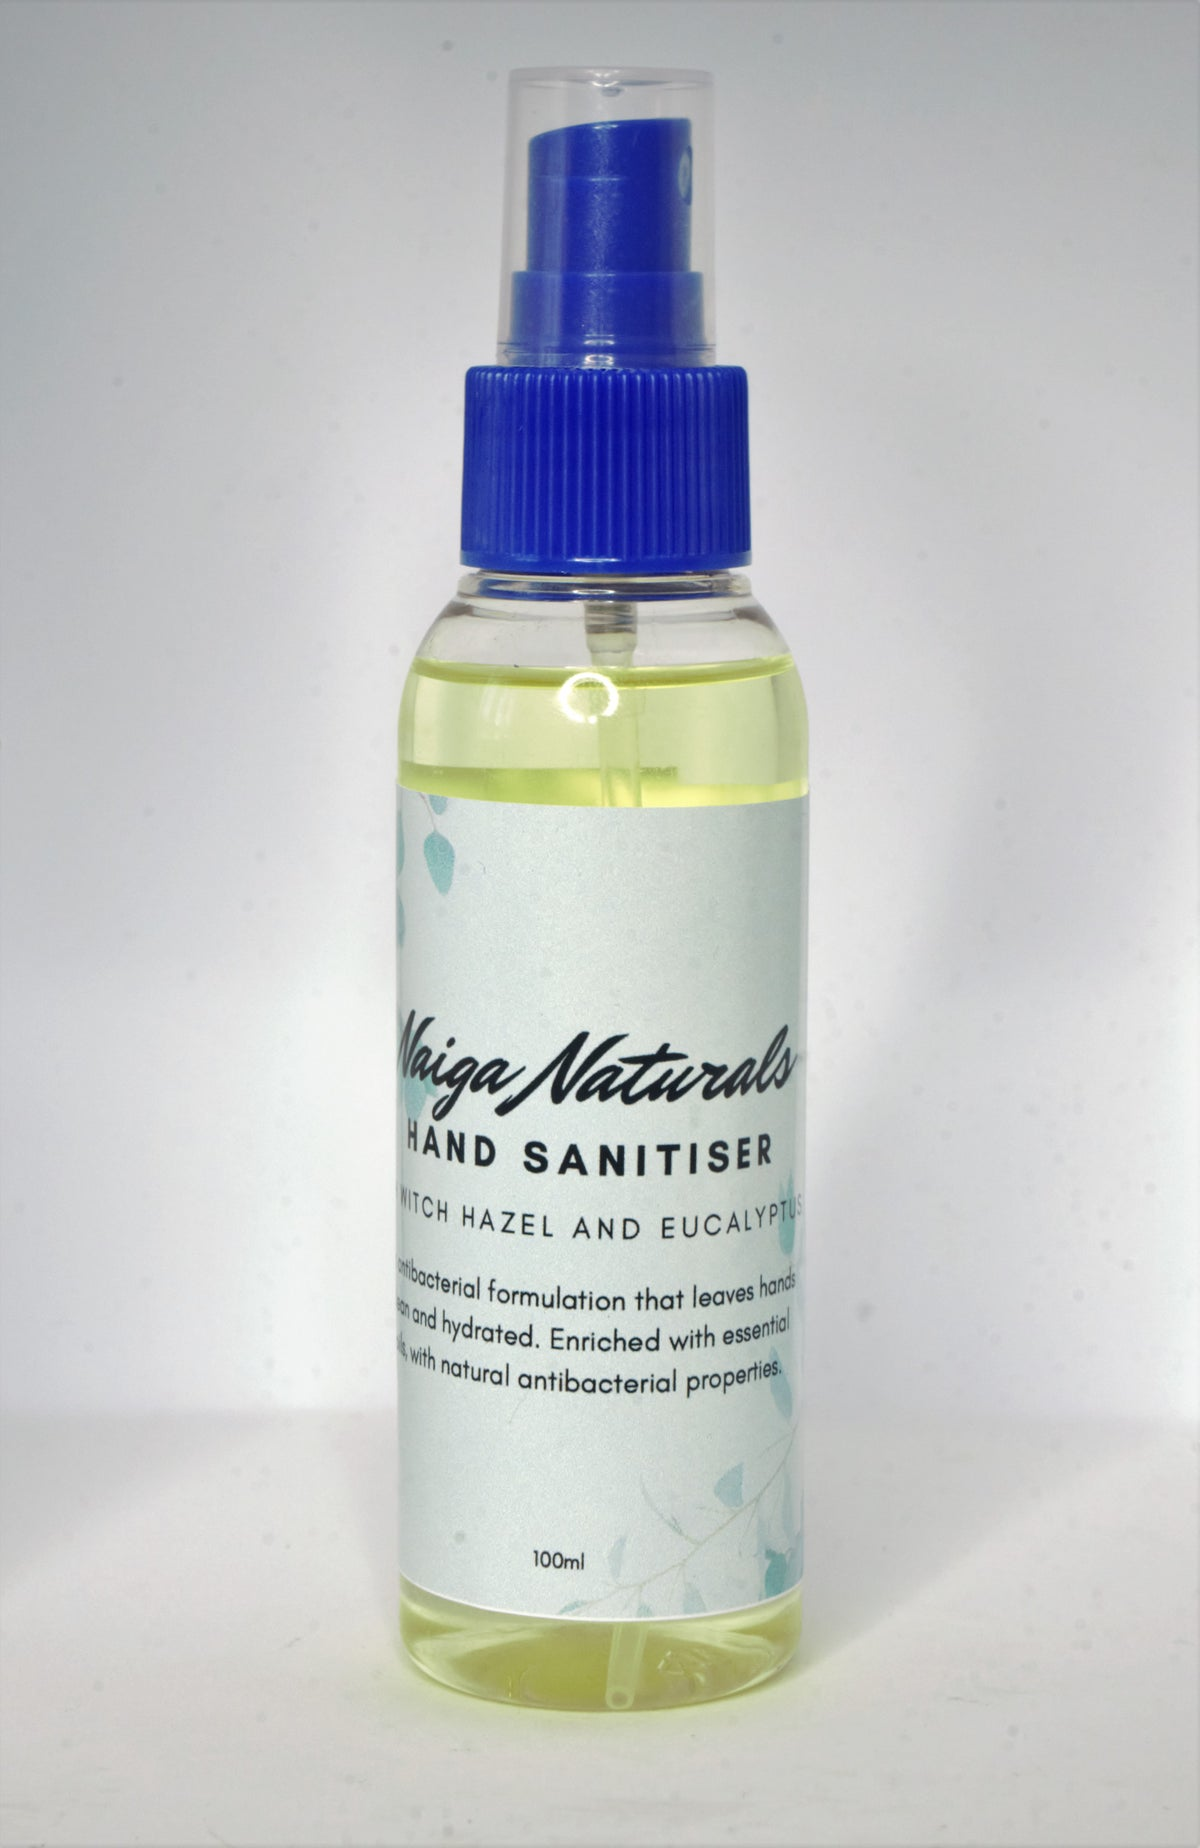 Image of Hand Sanitiser with 70%+ Isopropyl Alcohol, Witch Hazel and Eucalyptus